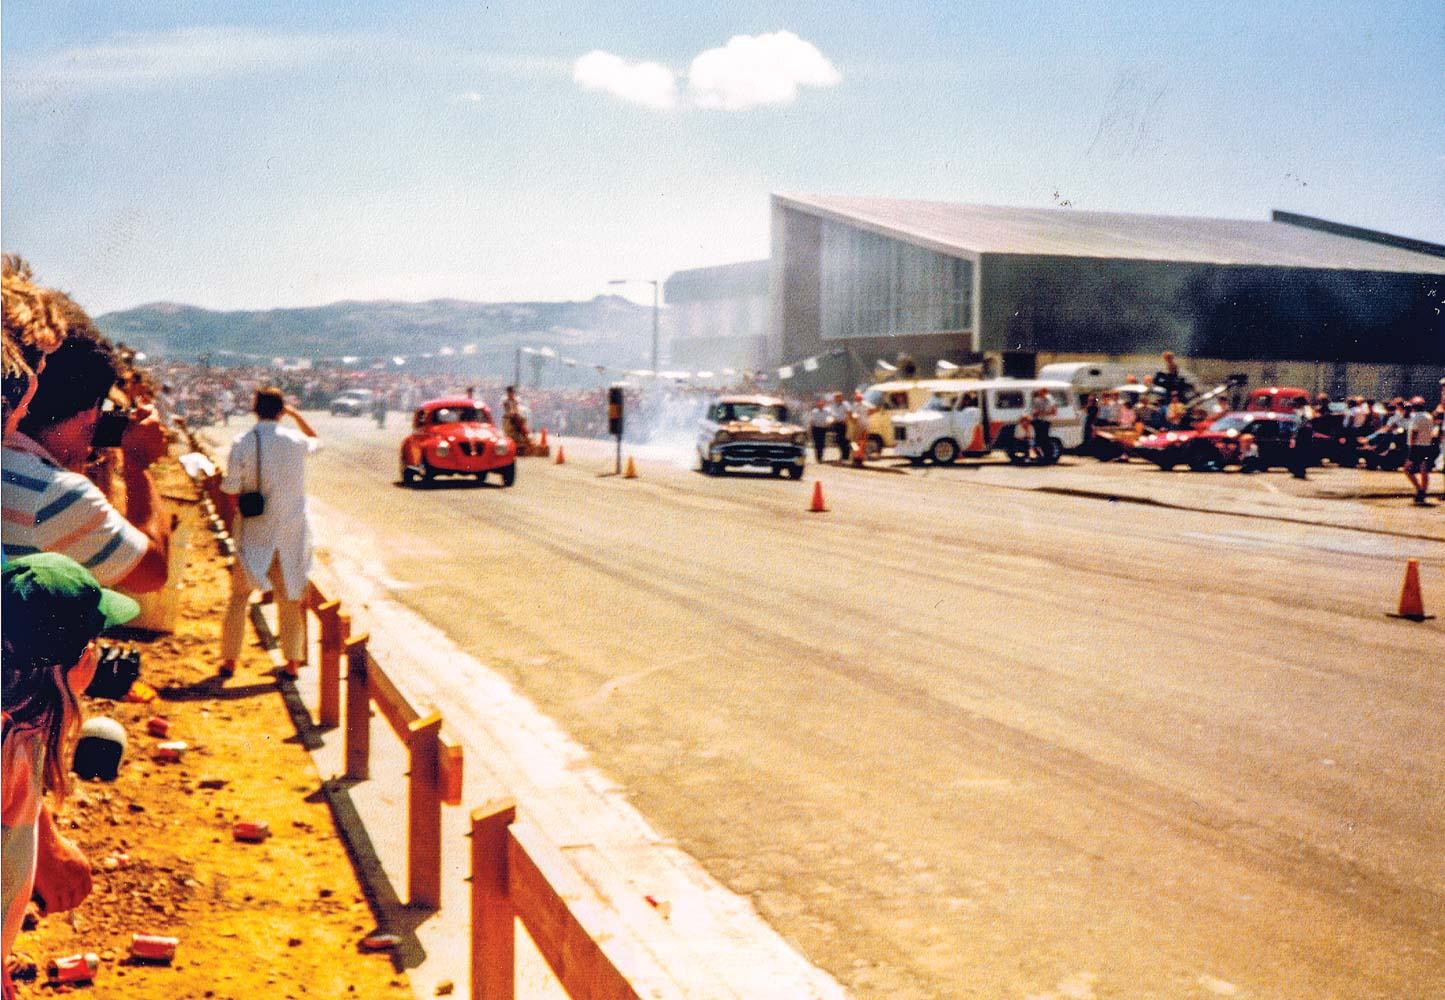 Half a century on: 50 years of Port Road Drags! — The Motorhood